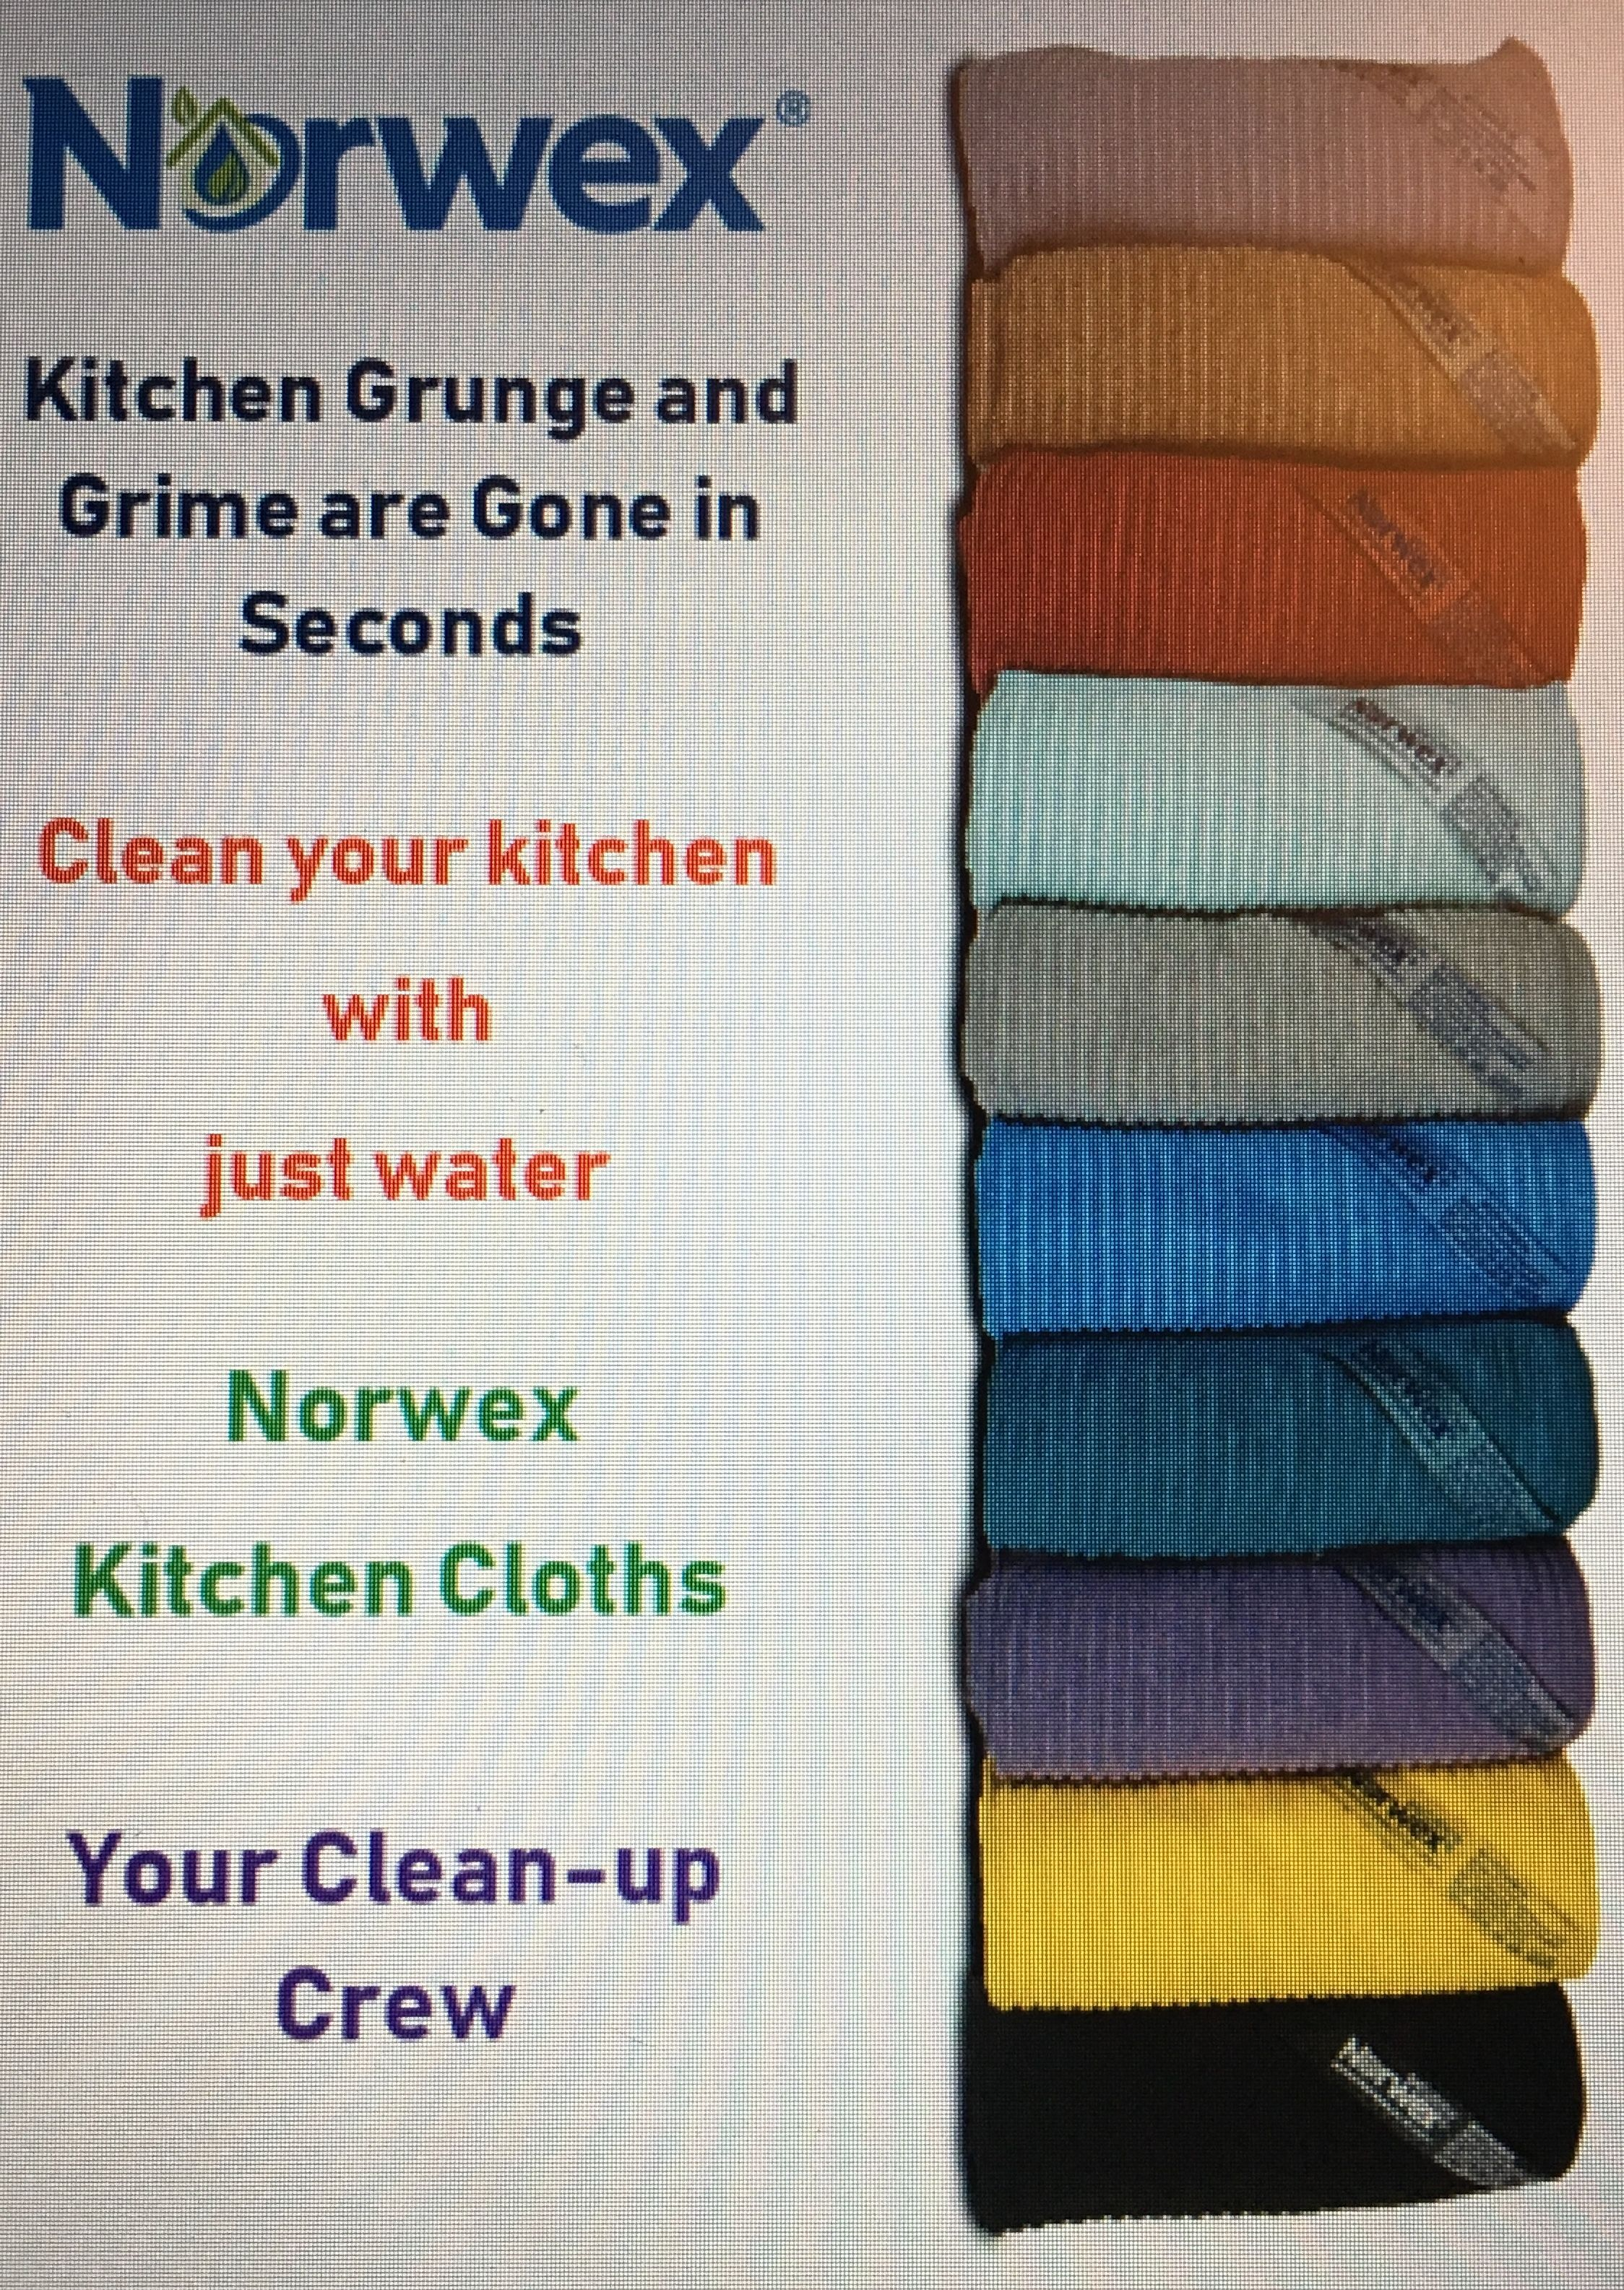 Kitchen Cloths Norwex Super Soft Absorbent And Fast Drying Dries Kitchen Counters And Dishes Quickly N Norwex Chemical Free Cleaning Norwex Microfiber